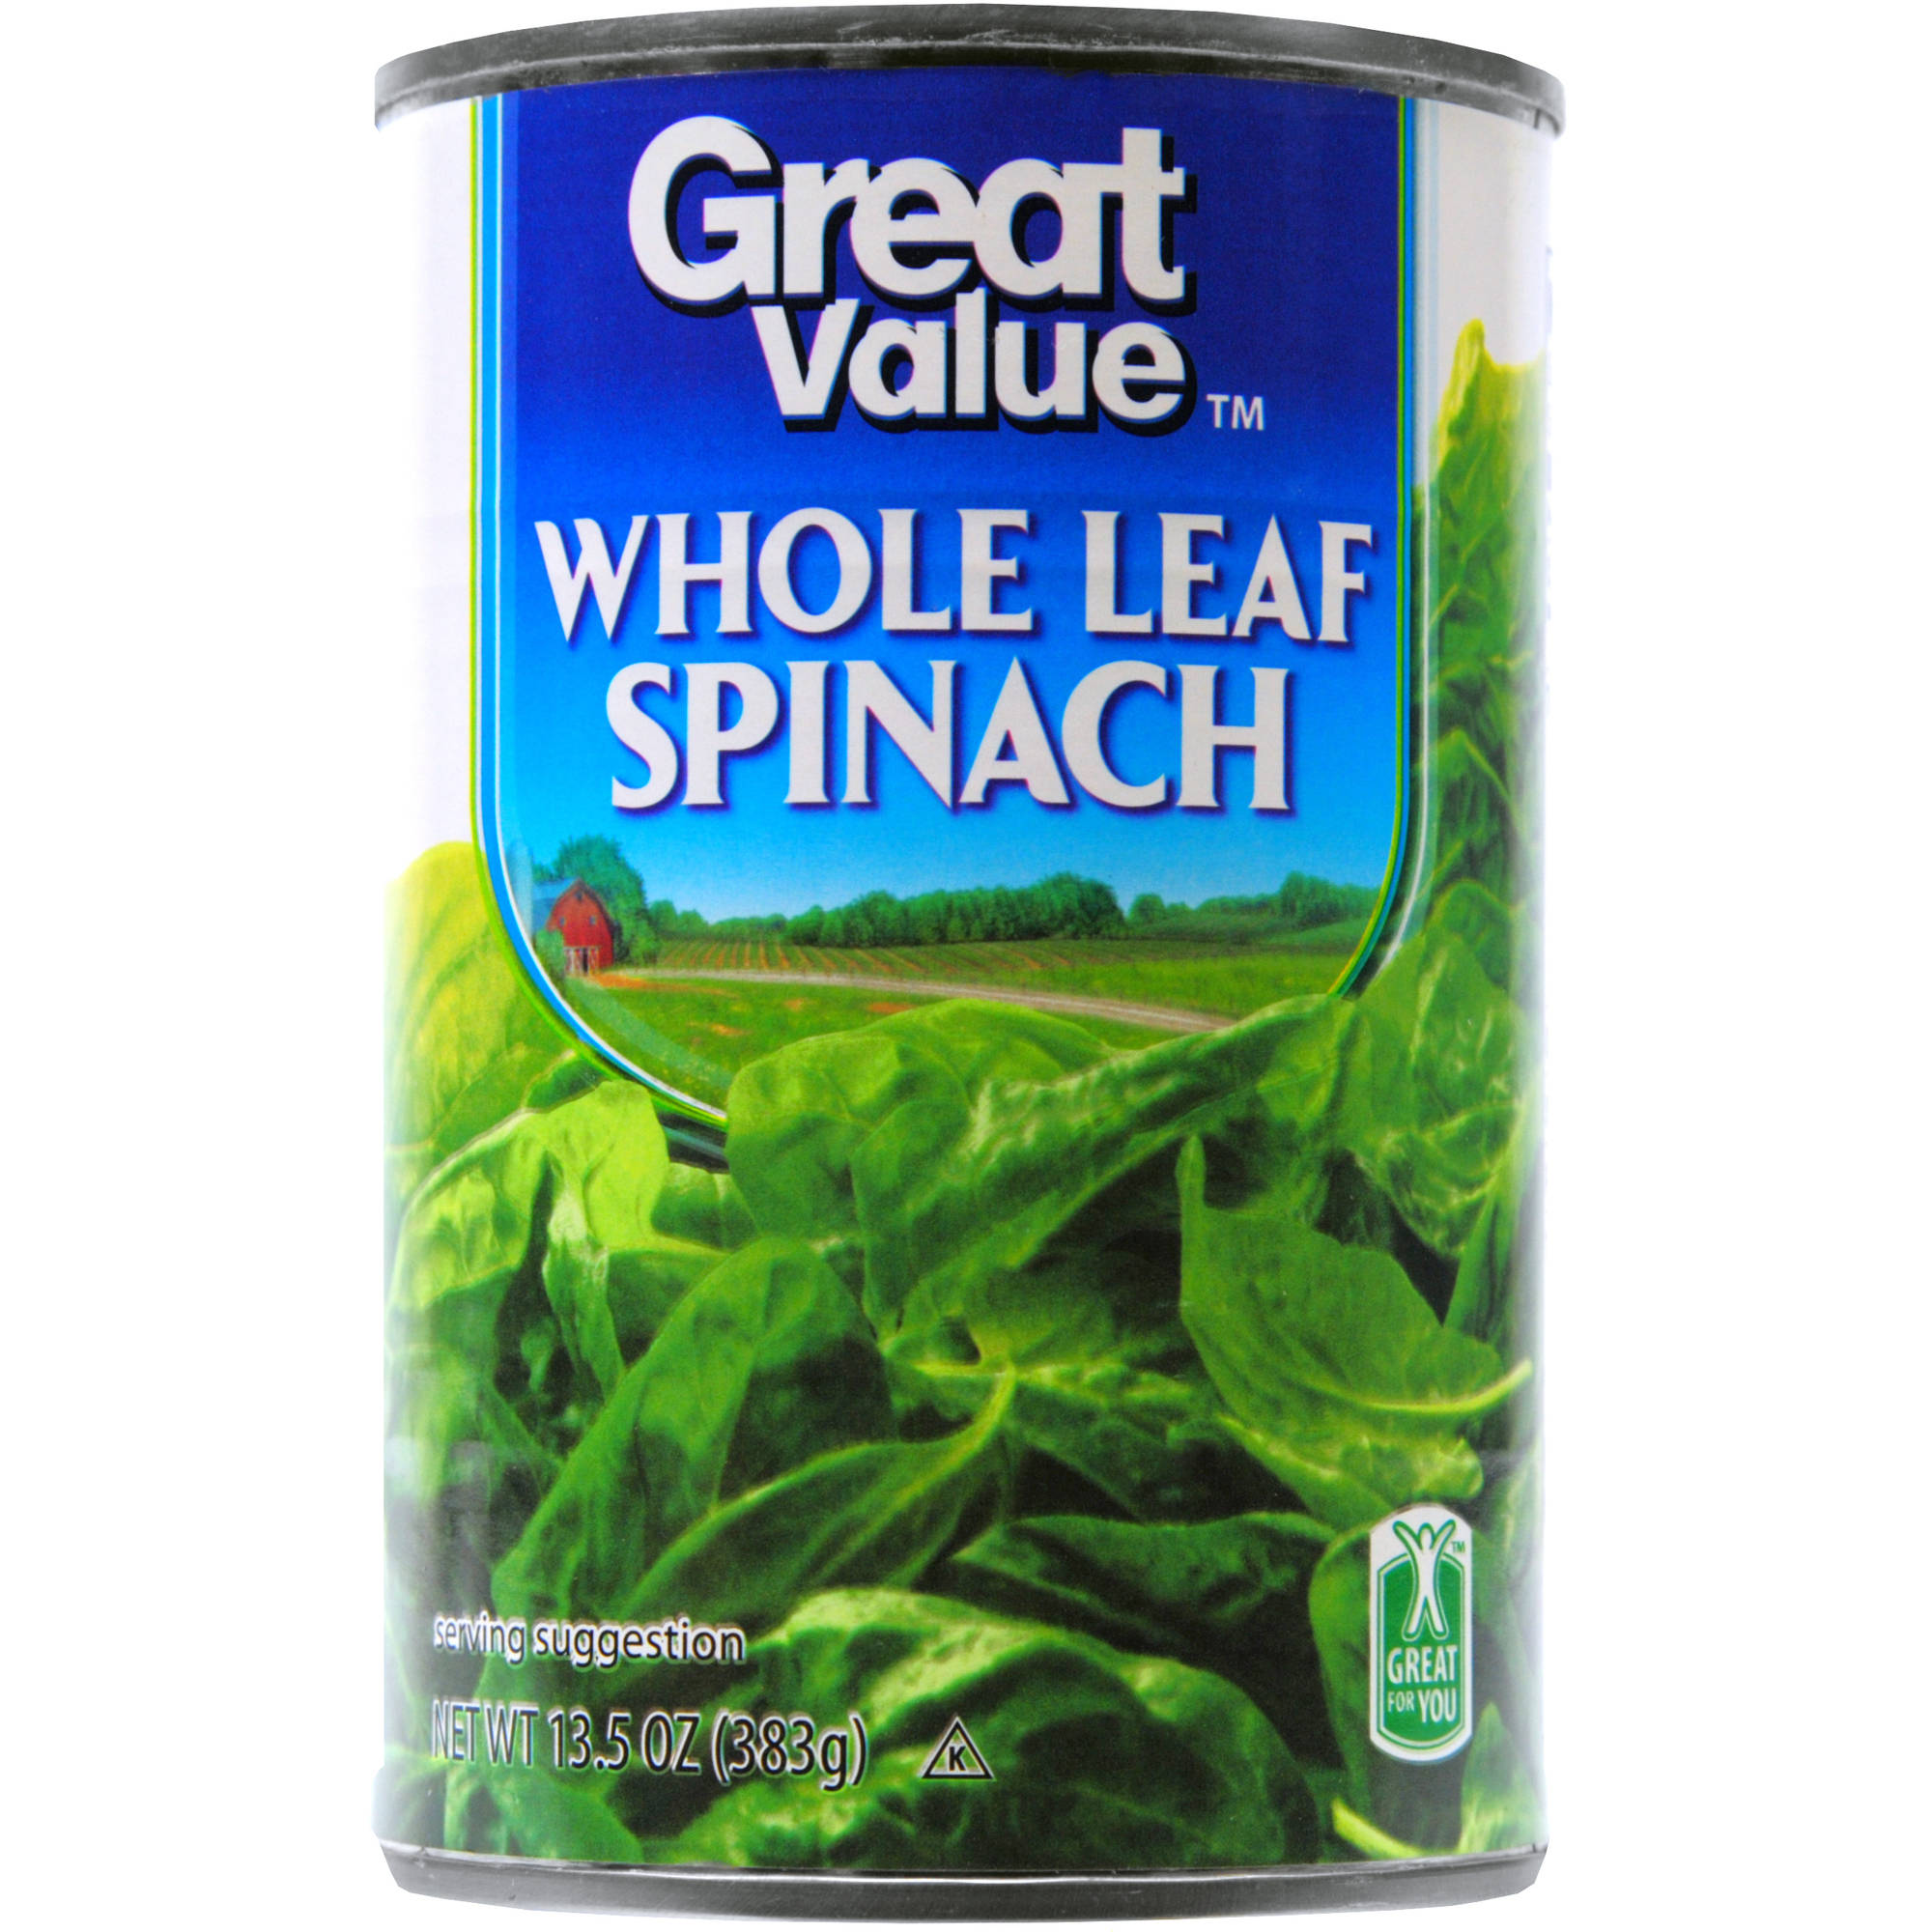 Great Value Whole Leaf Spinach, 13.5 Oz